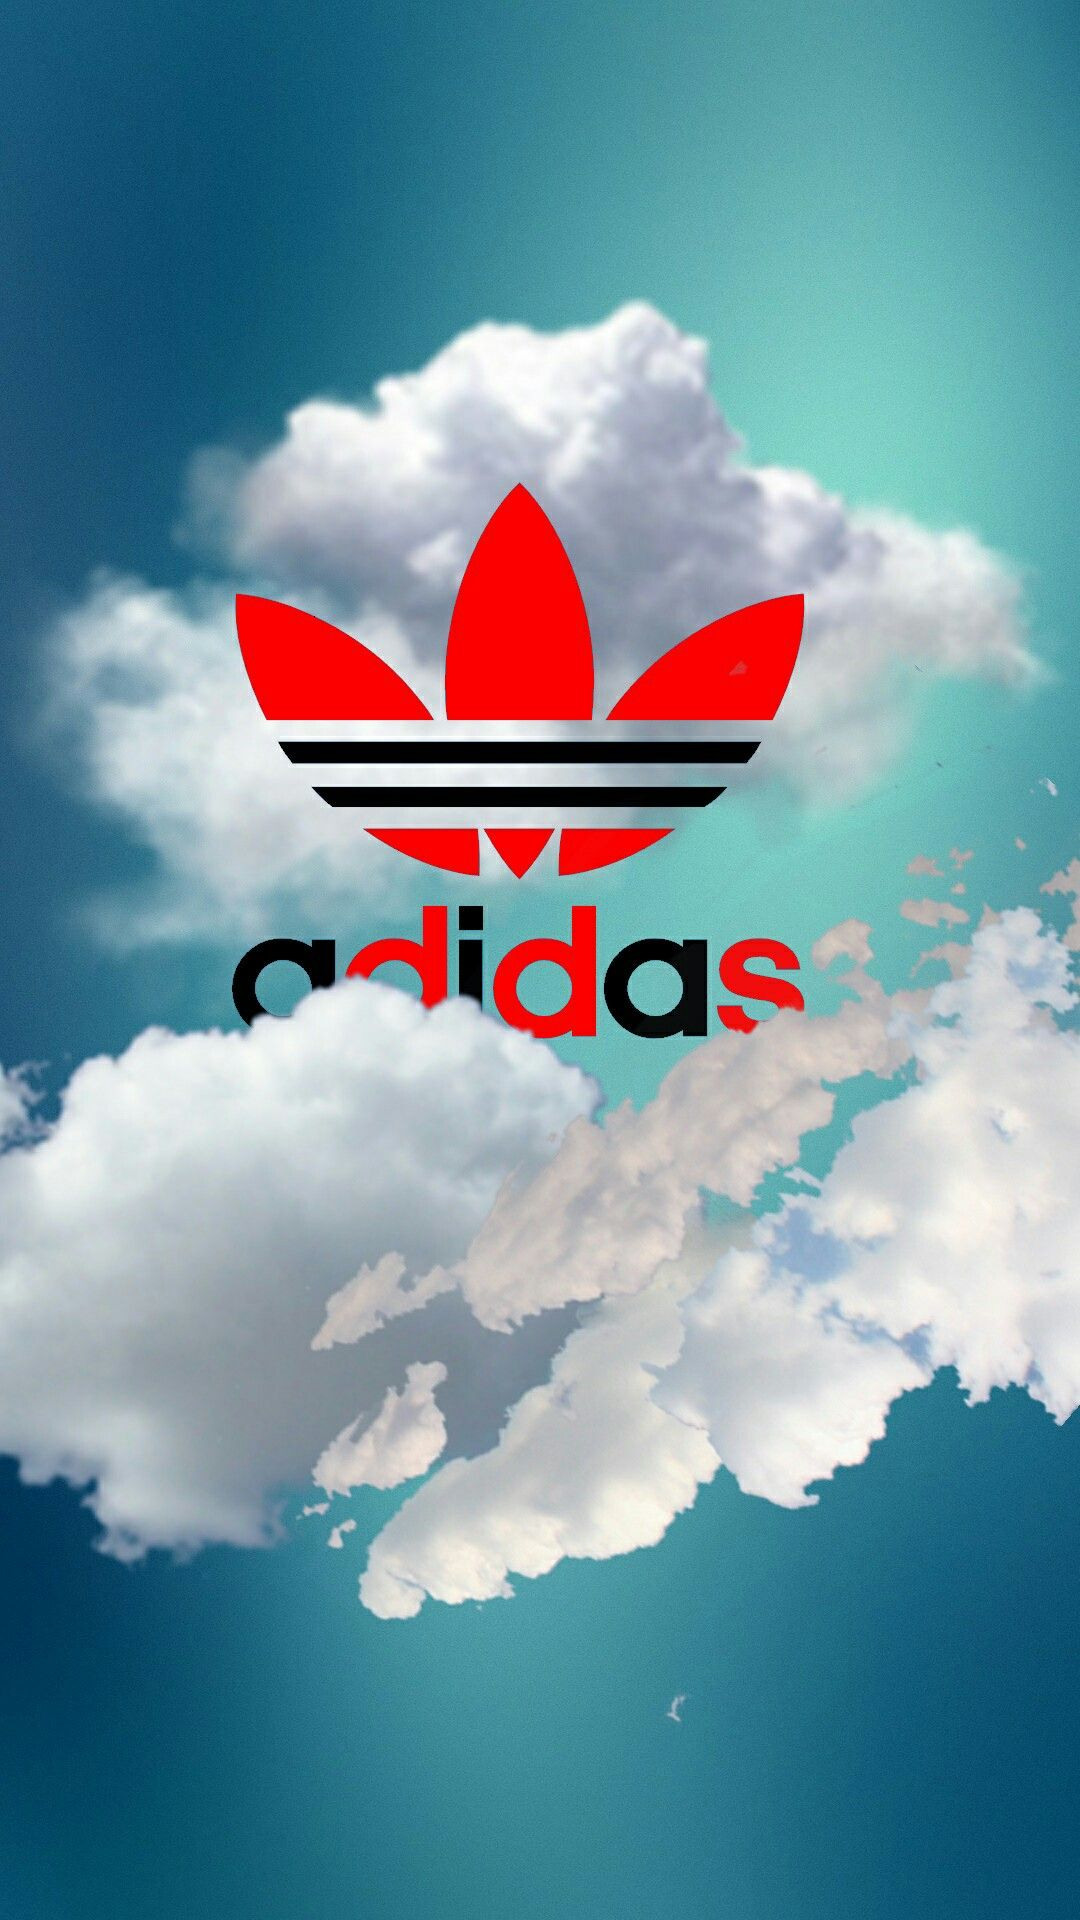 Pin by Nicole on Adidas Wallpaper Pinterest Adidas